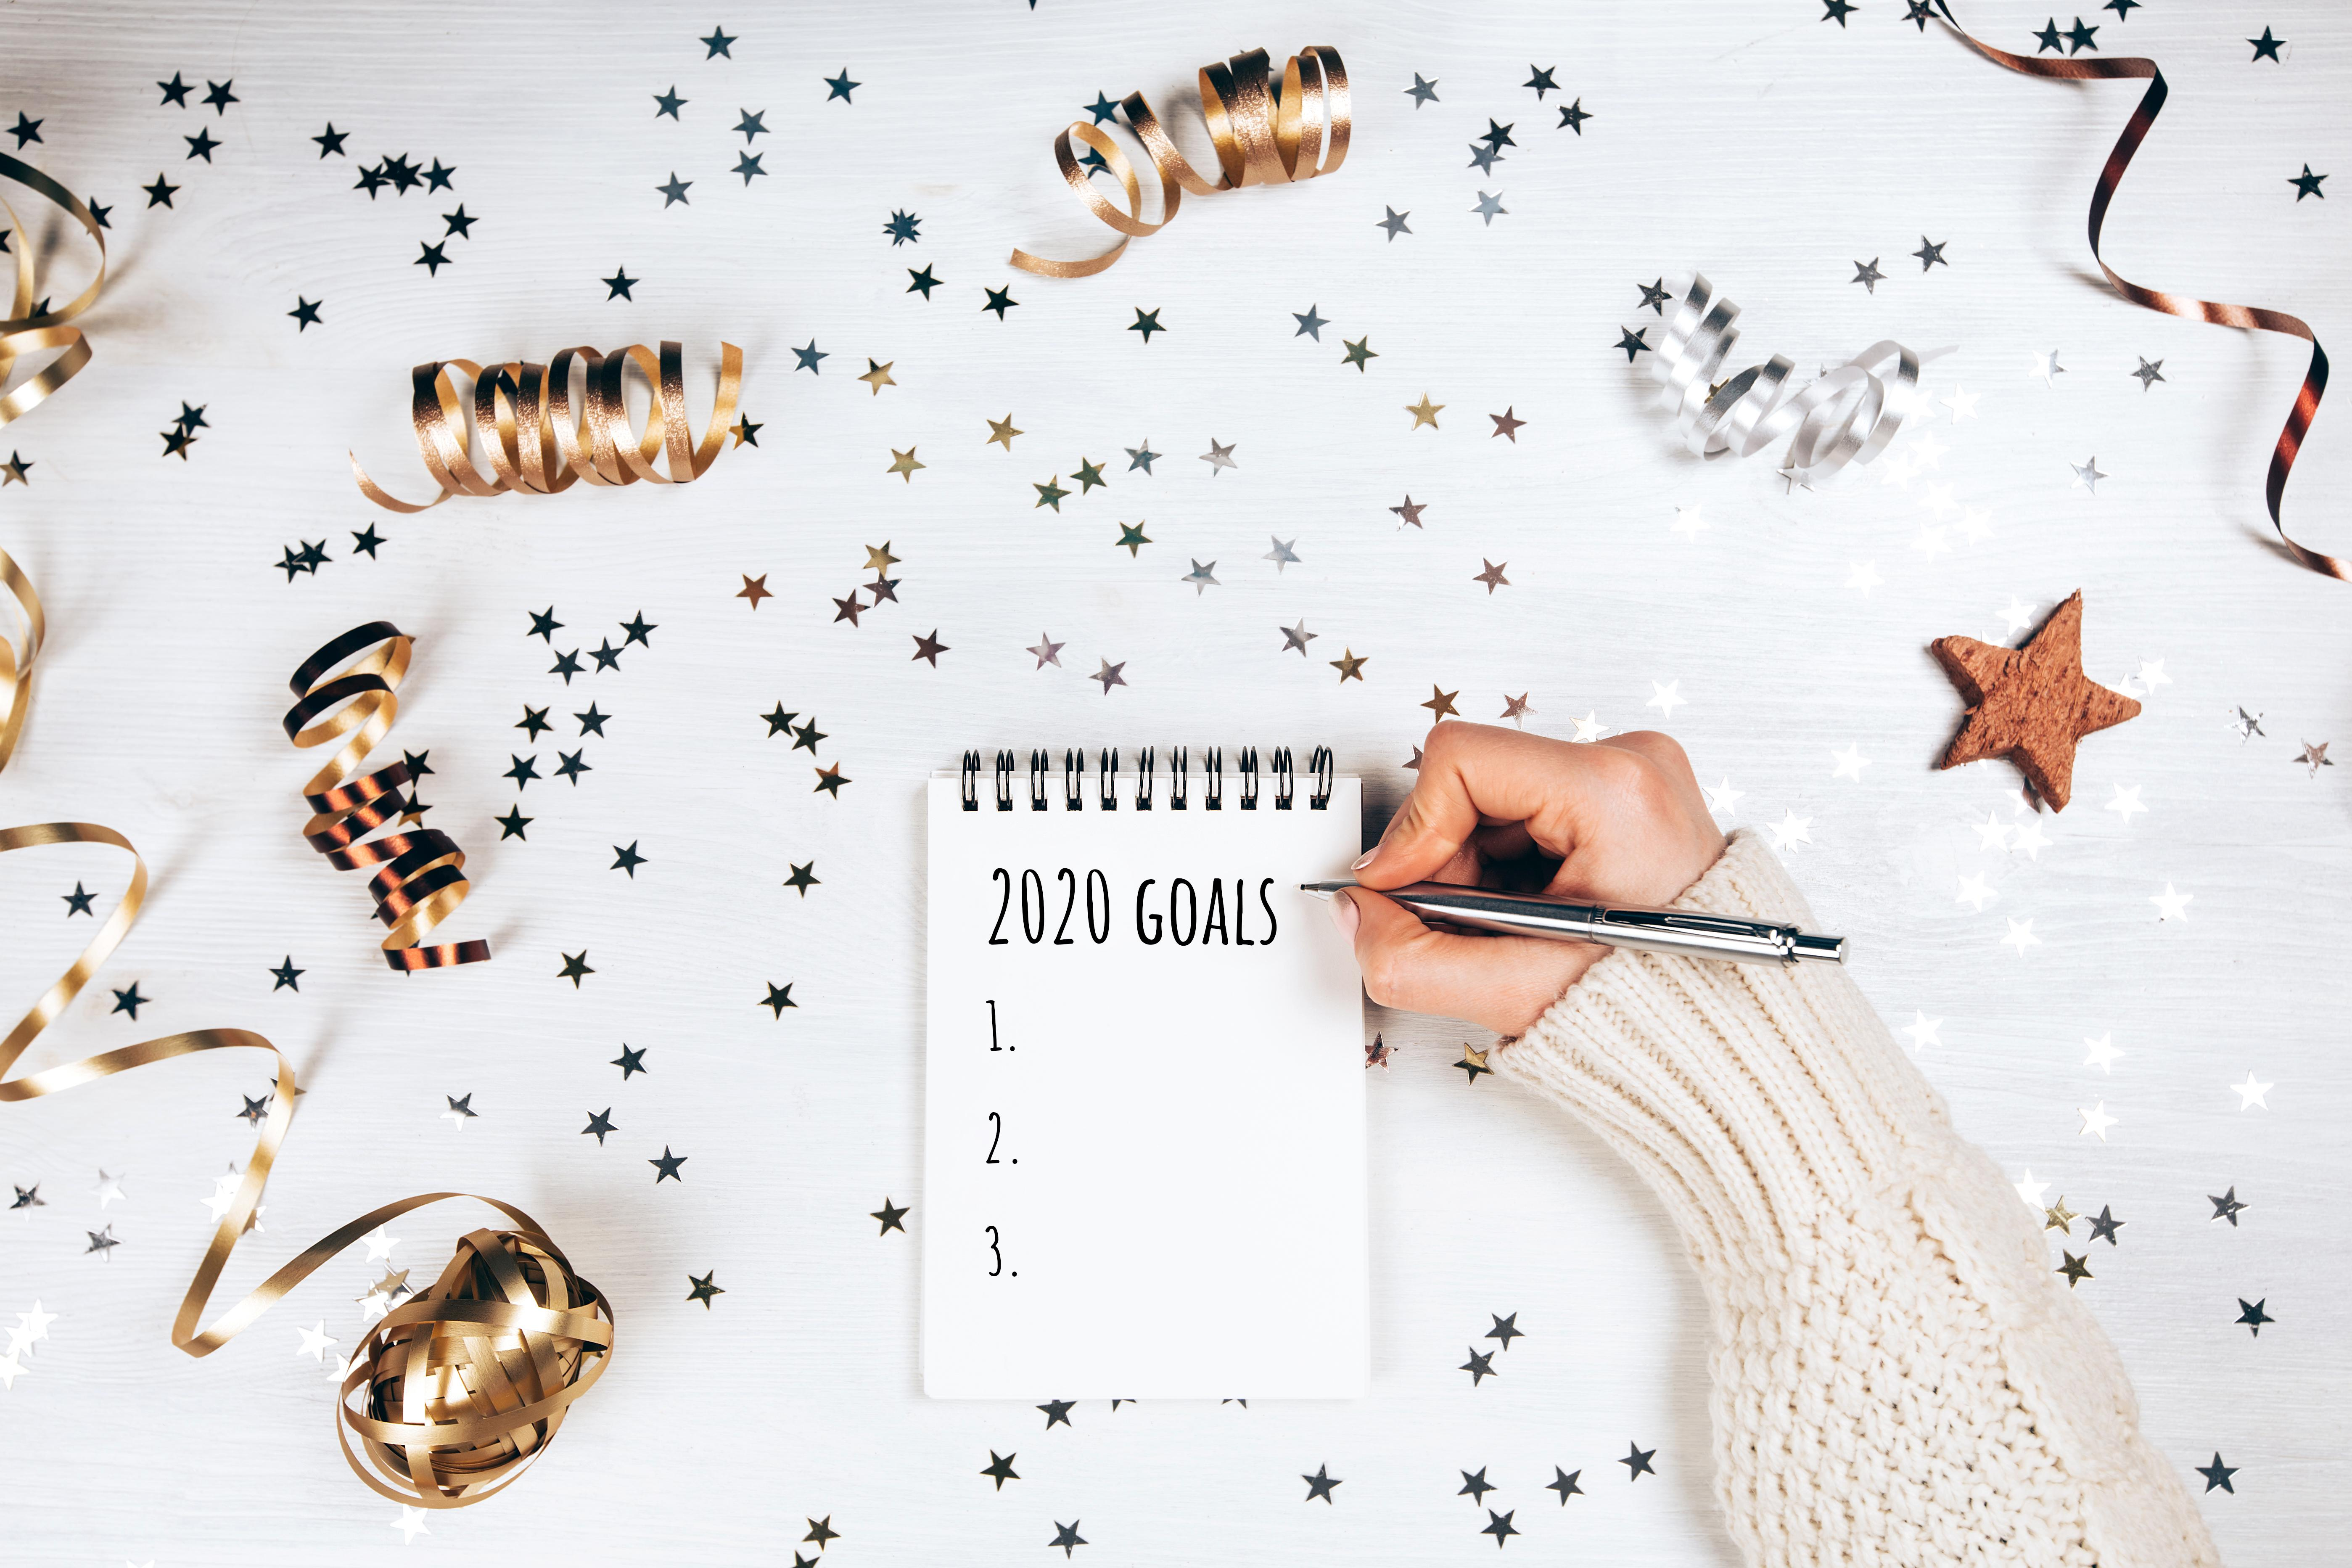 Have You Thought About Your Financial Goals For 2020? Thumbnail